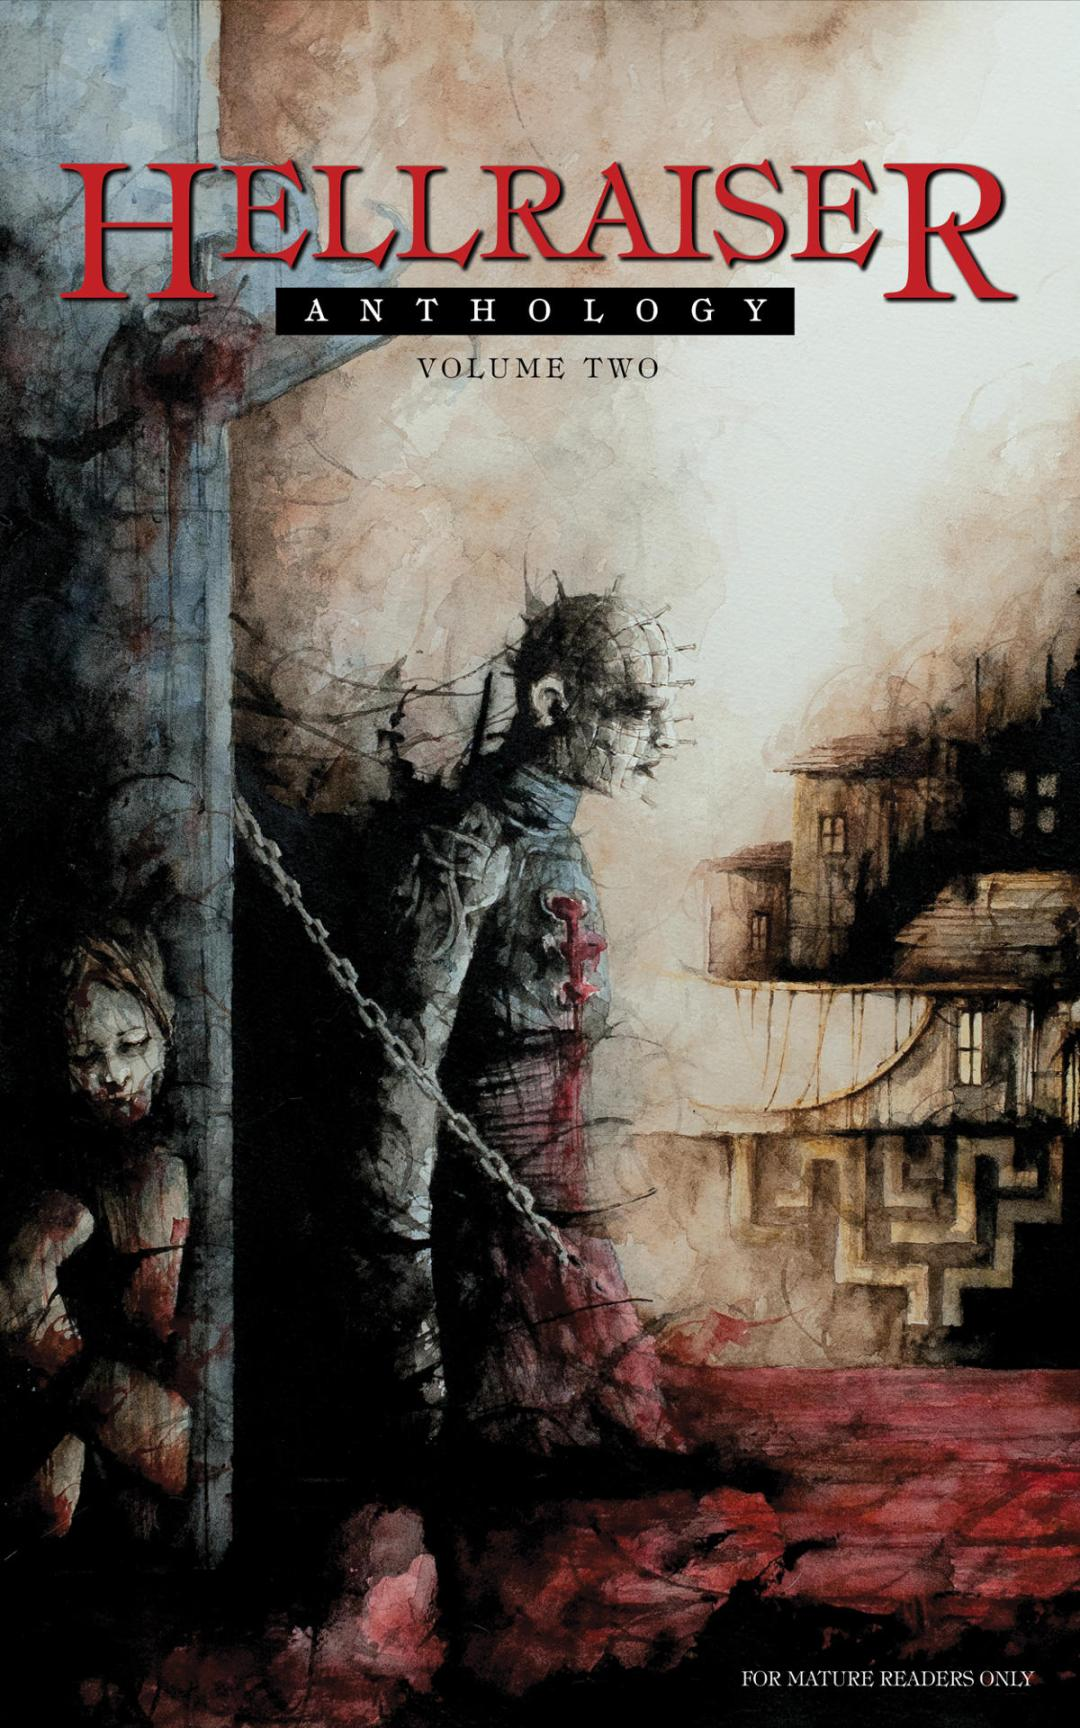 Clive Barker's Seraphim Comics To Show Us 'Hellraiser: Anthology Volume Two' In September!